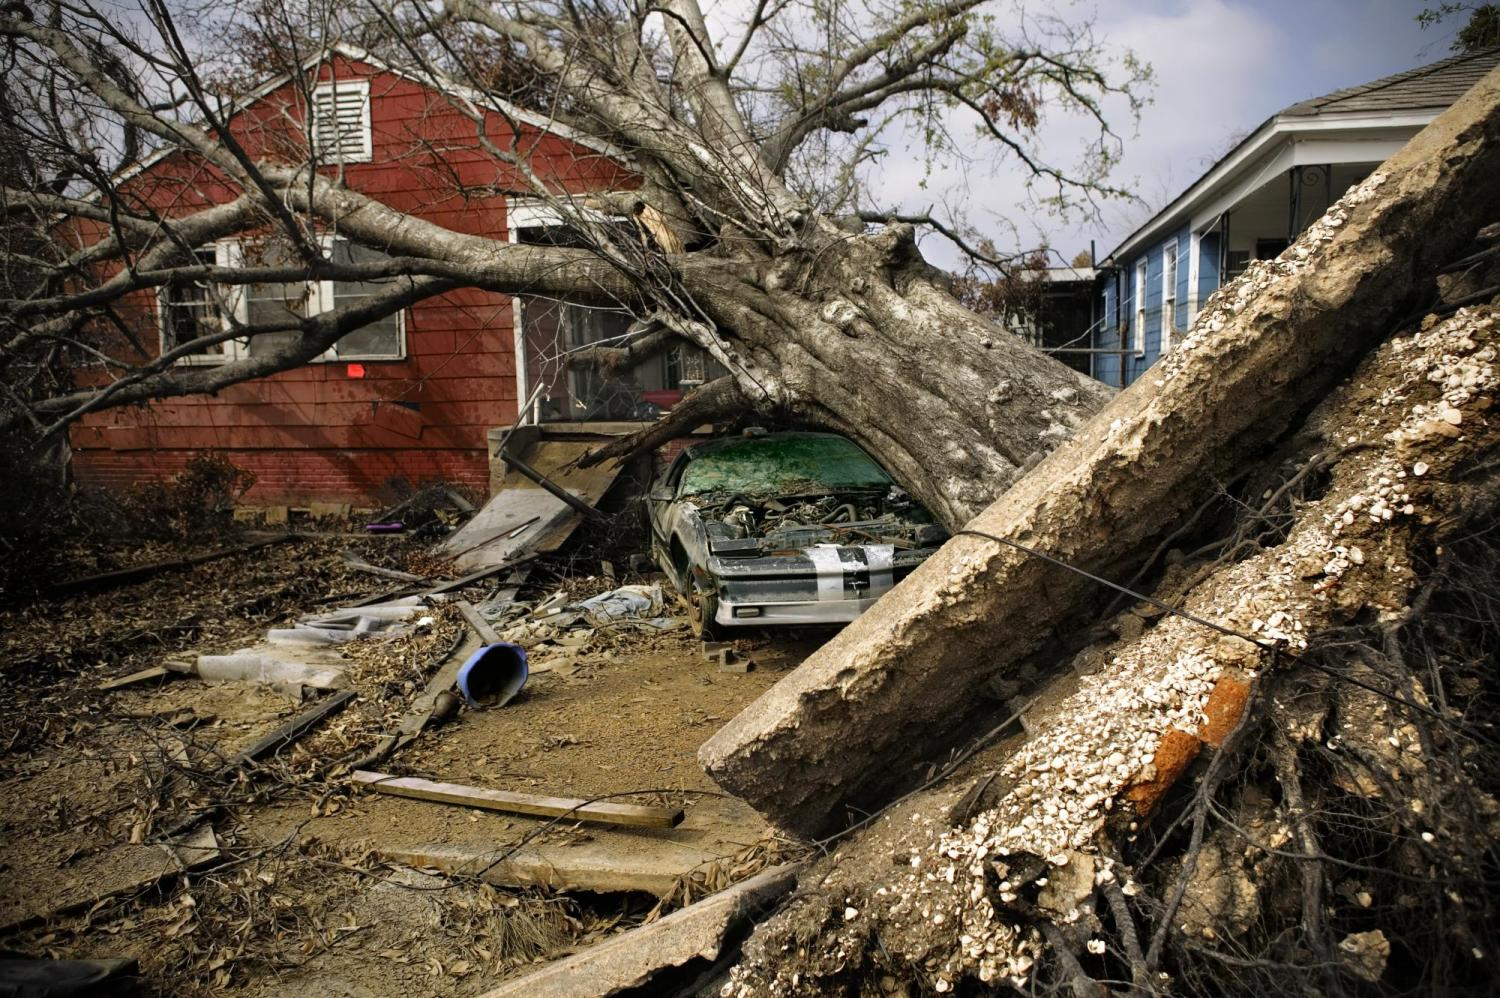 A home destroyed after Hurricane Katrina